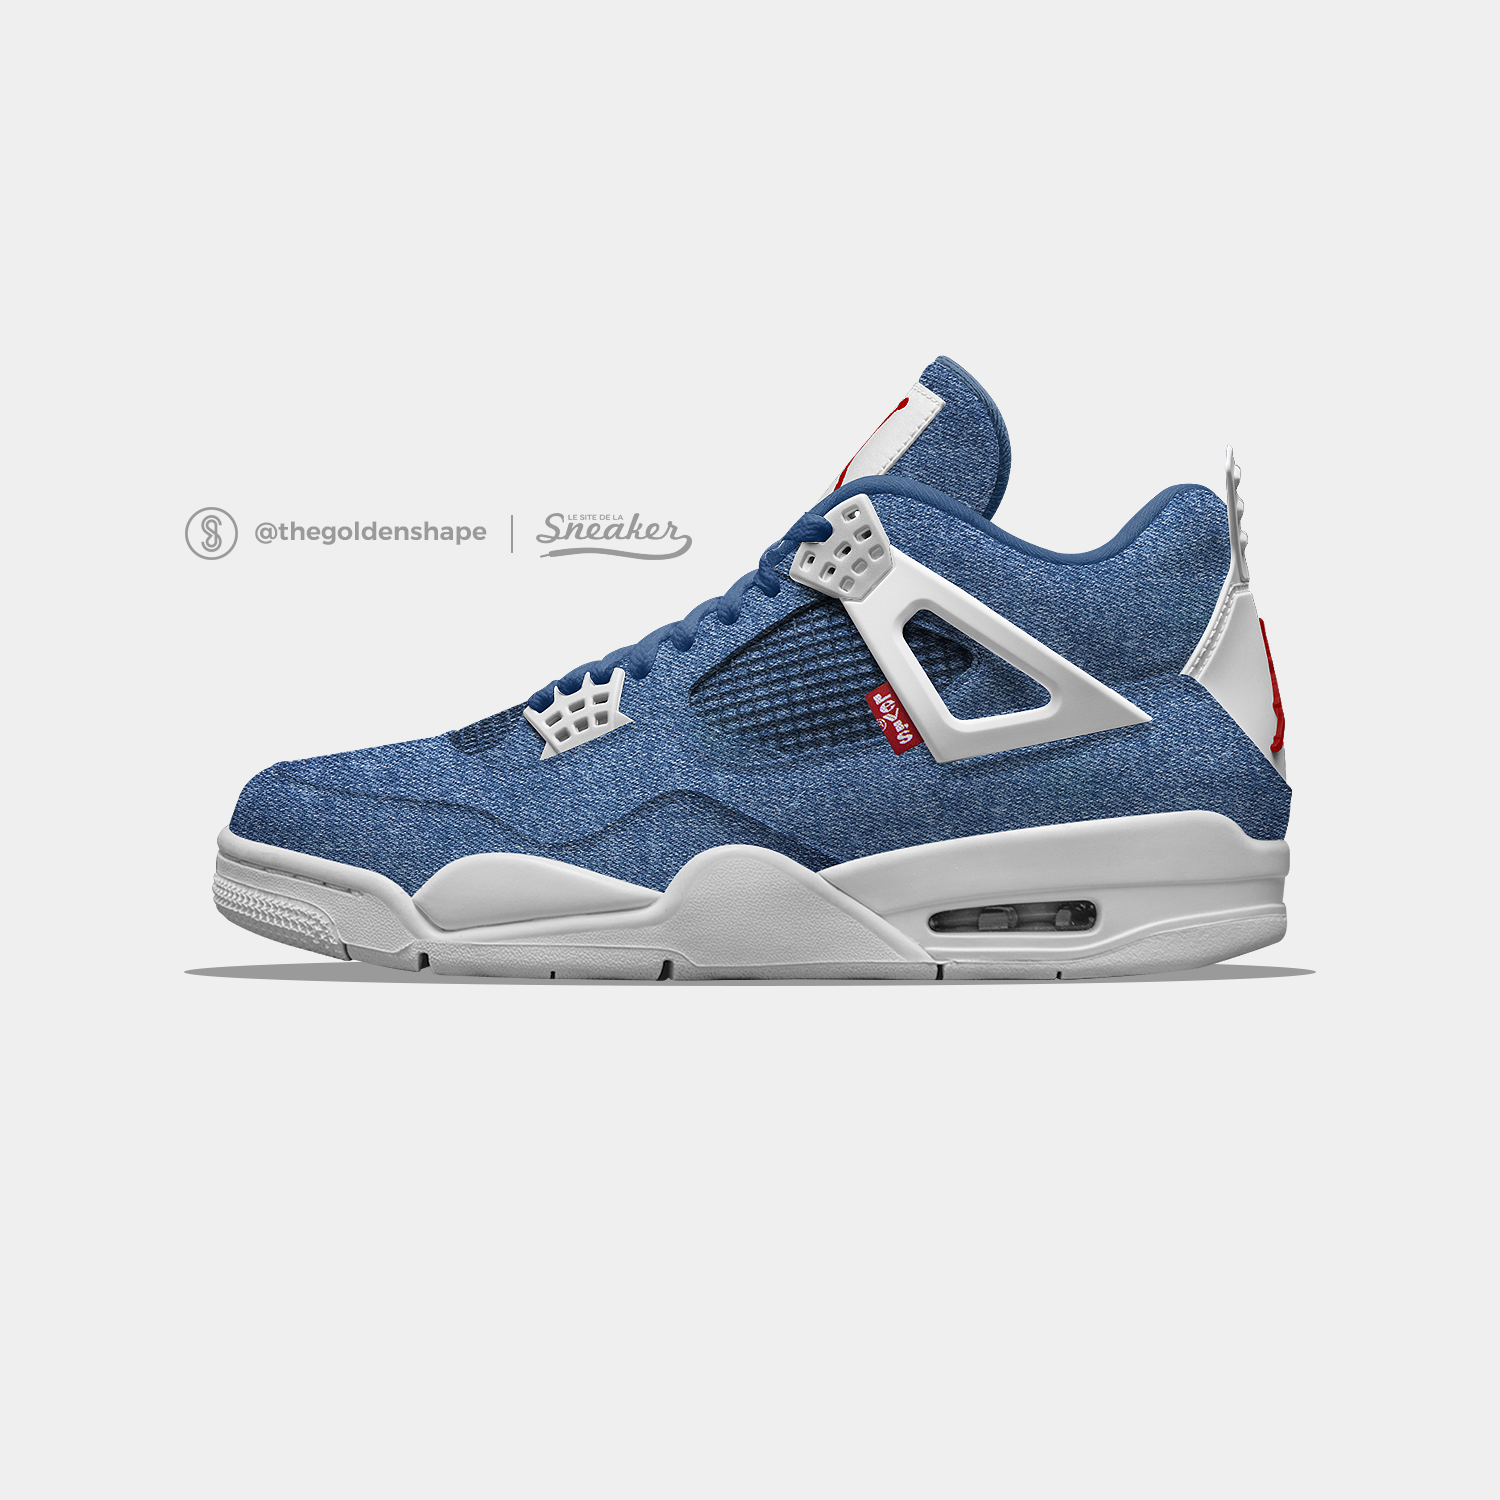 Levi s x Air Jordan 4 Denim Pack  96e75f253